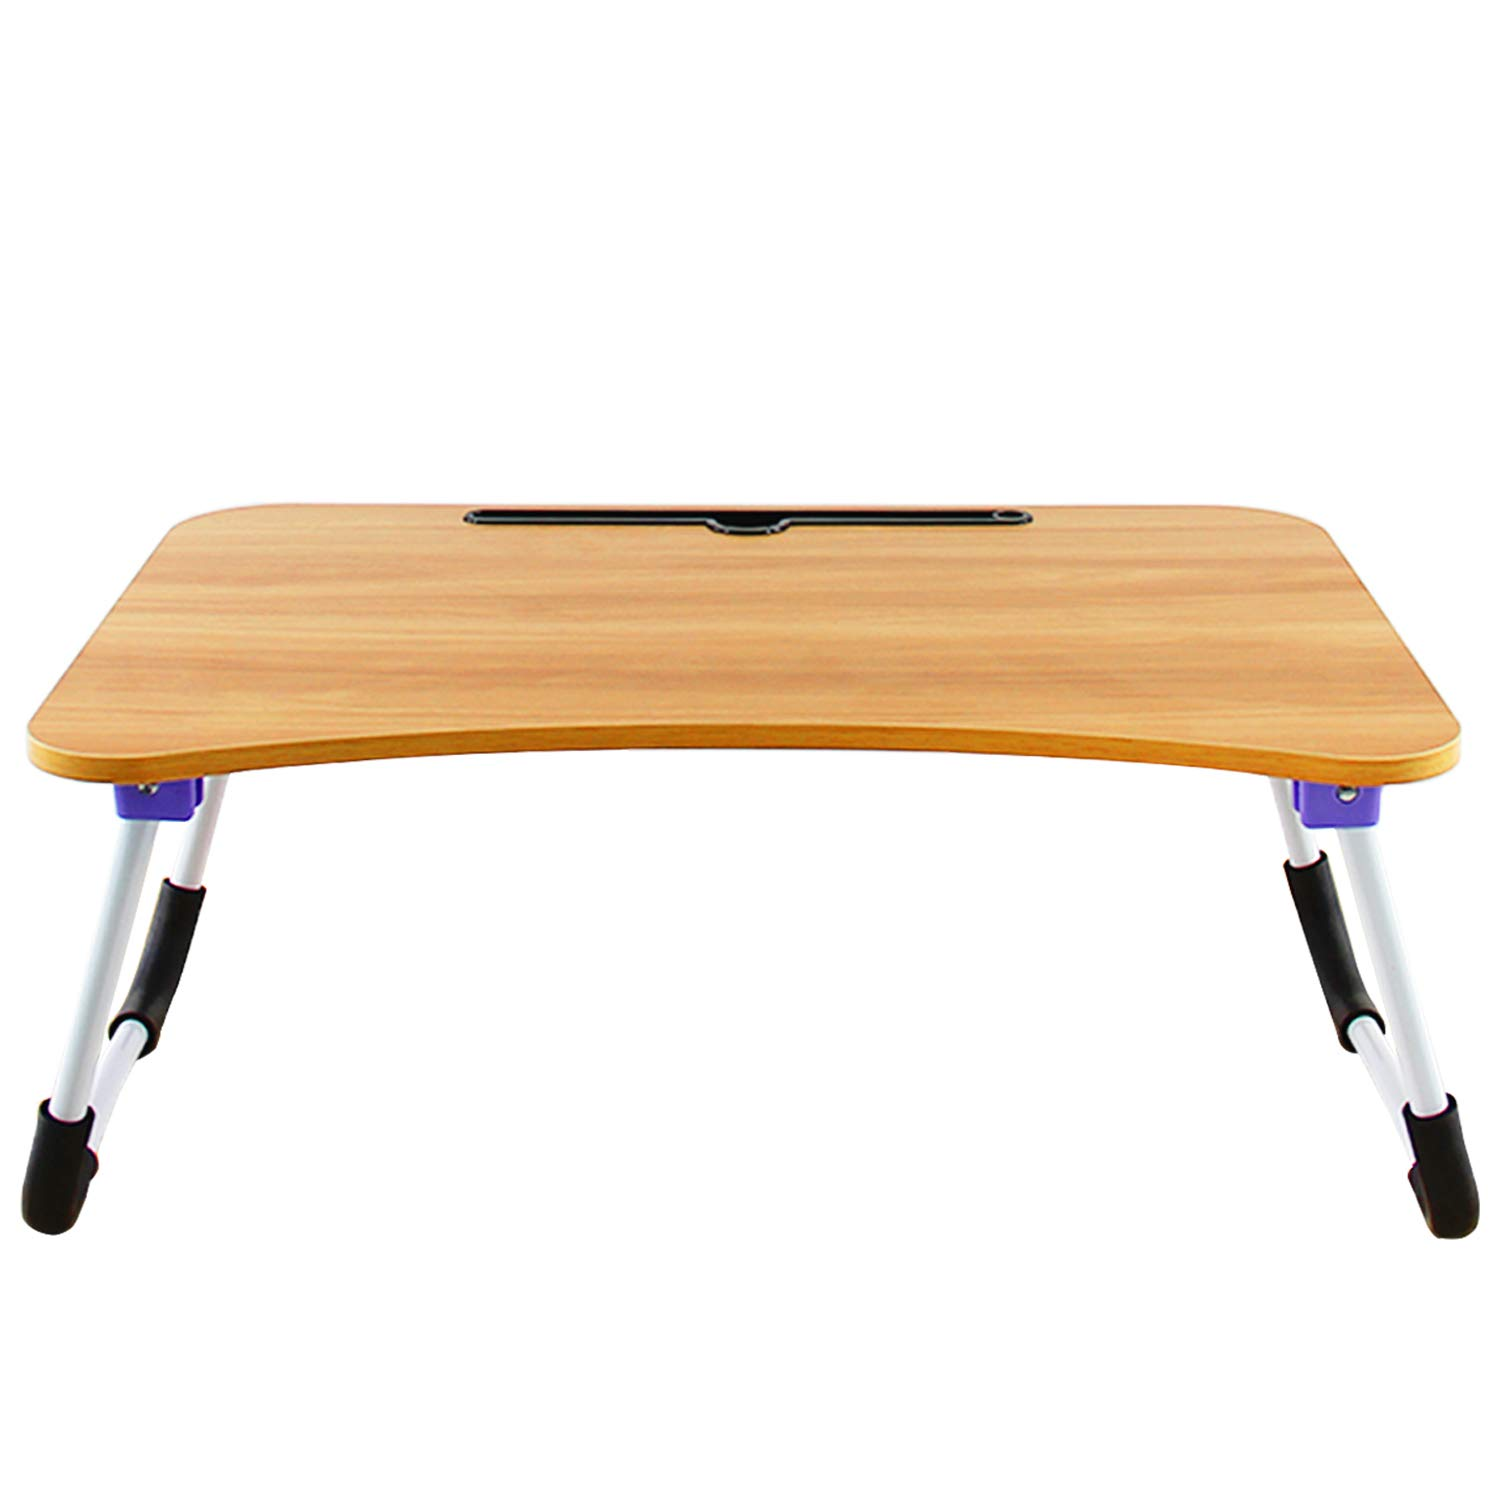 DL Furniture - Large Foldable Bed Tray Lap Desk, Perfect for Watching Movie on Bed Or As Personal Dinning Table | Natural Wood with Cell Phone Holder